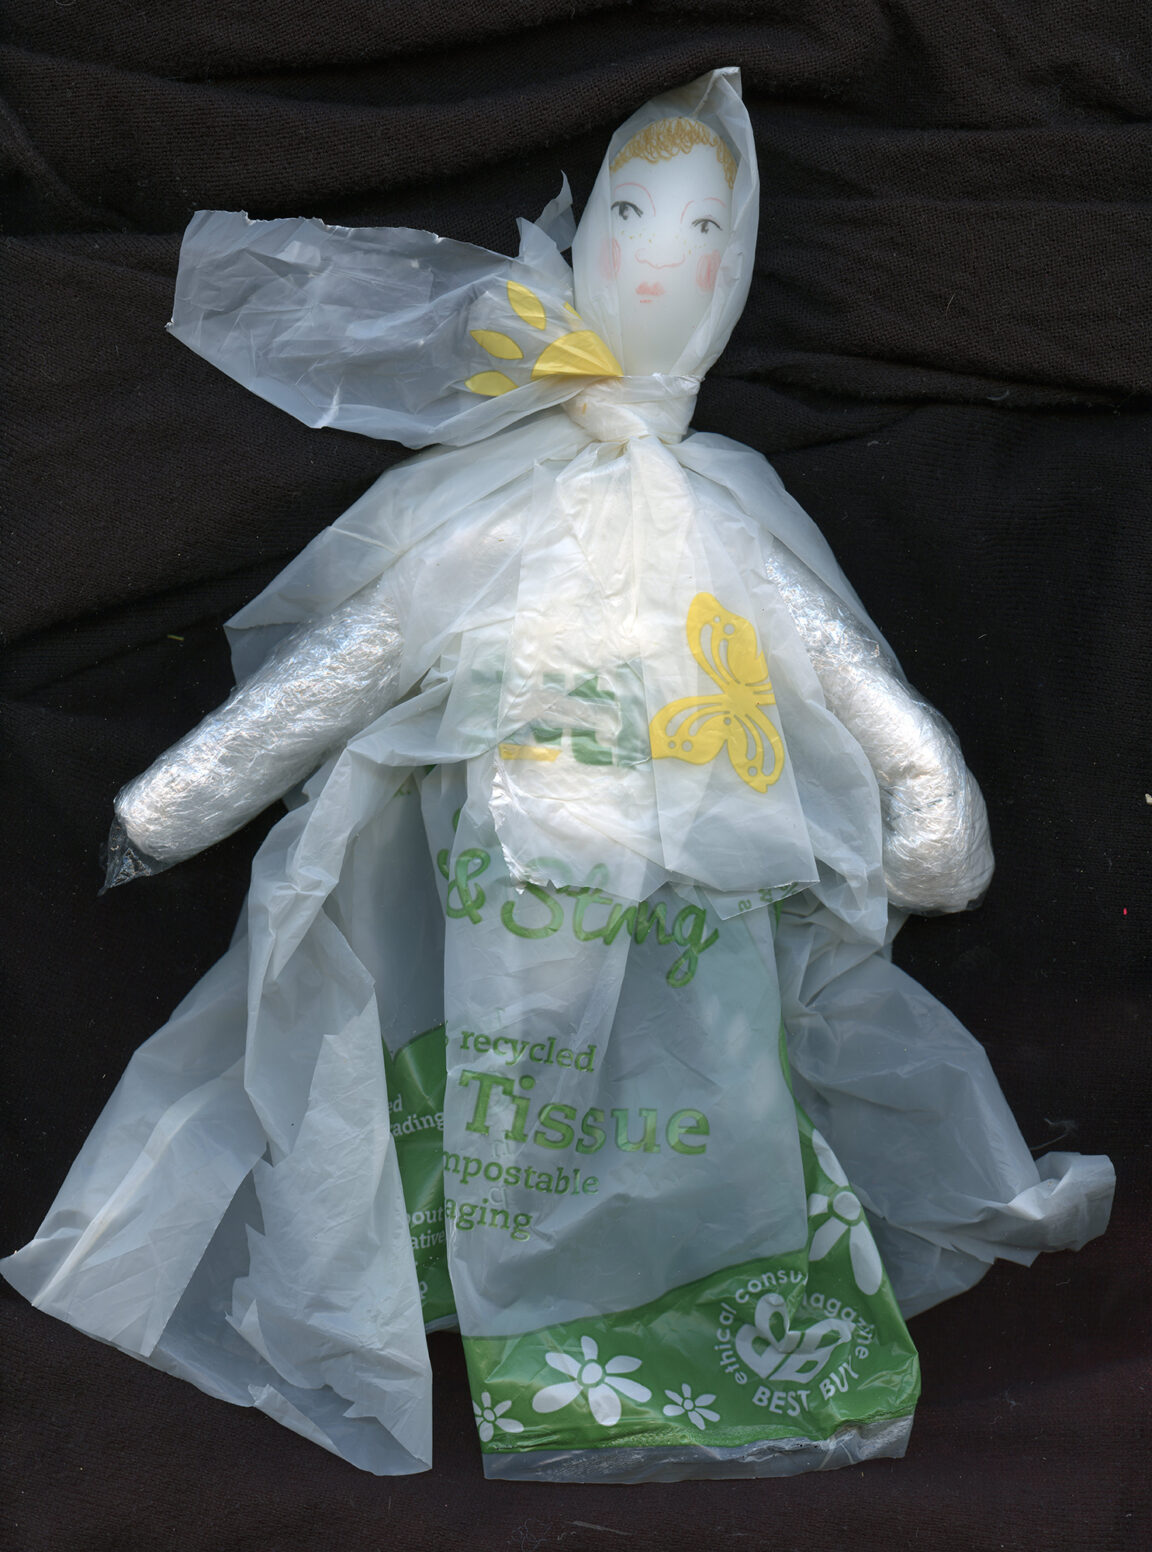 Image of a creature made from biodegradable plastic